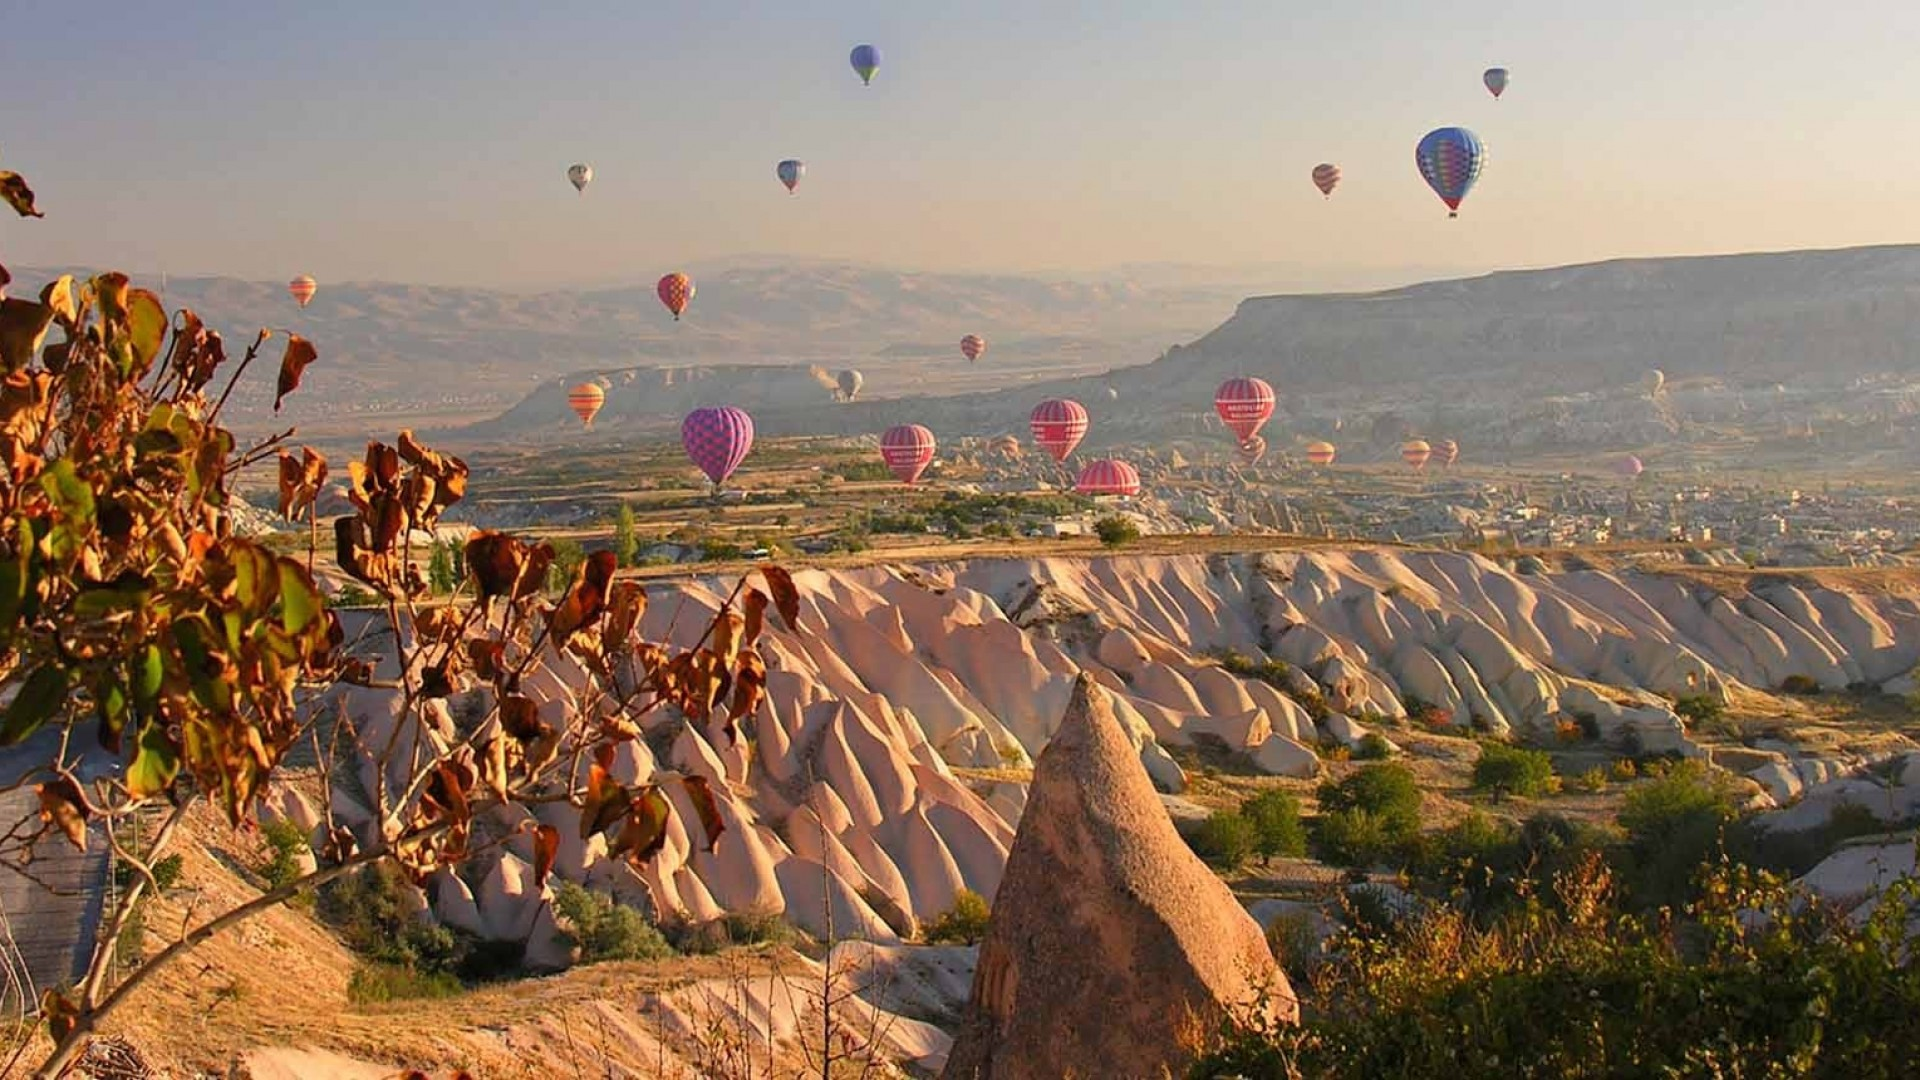 Turkey Cappadocia - #TurkeyTourism- #Travel Information And Guide #FrizeMedia #DigitalMarketing